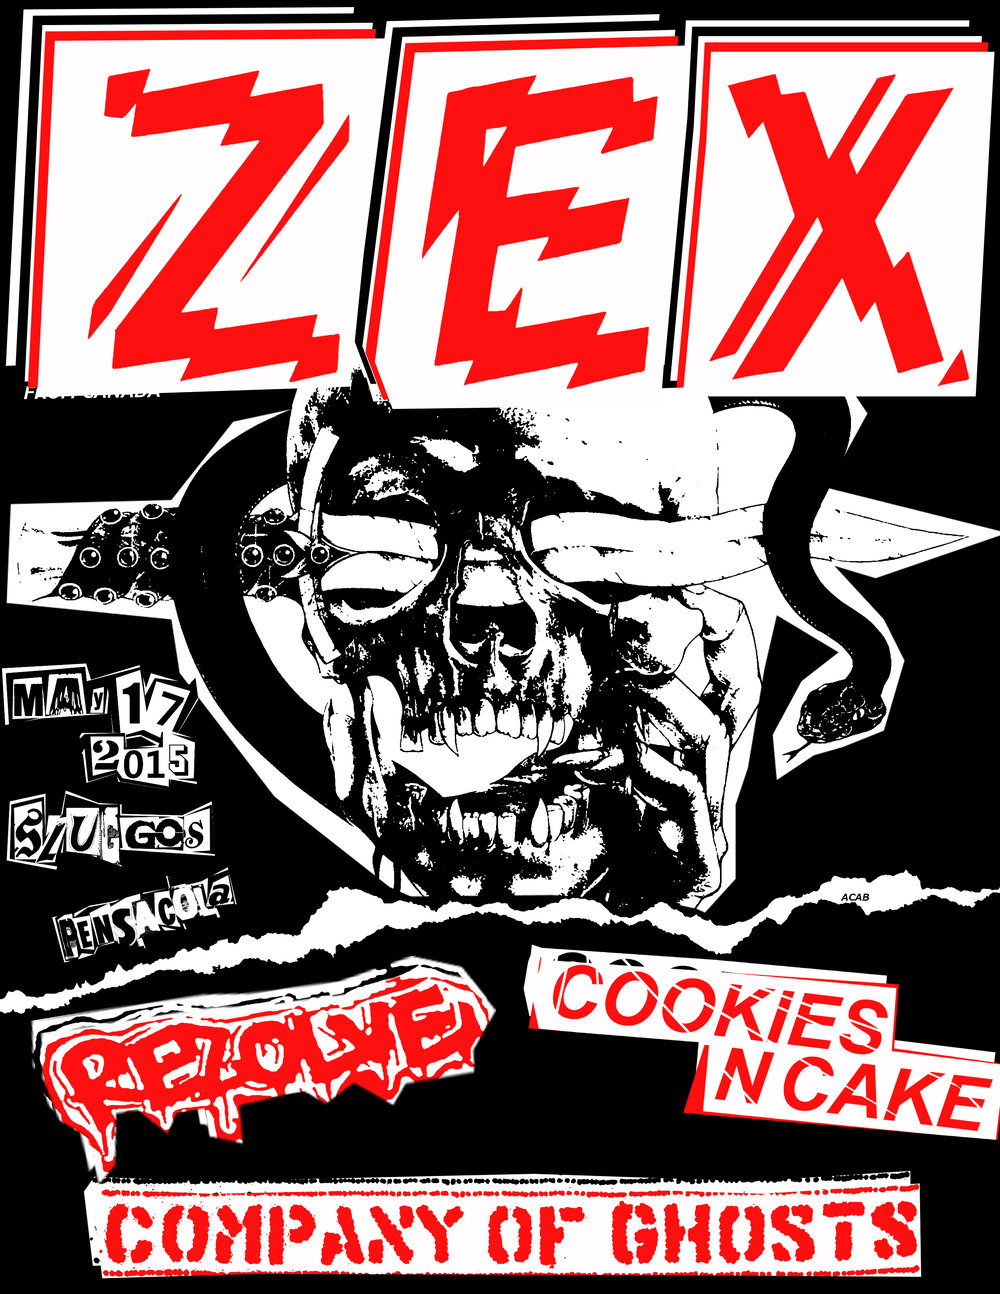 flyer-15.05.17-pensacola-zex-red.jpg